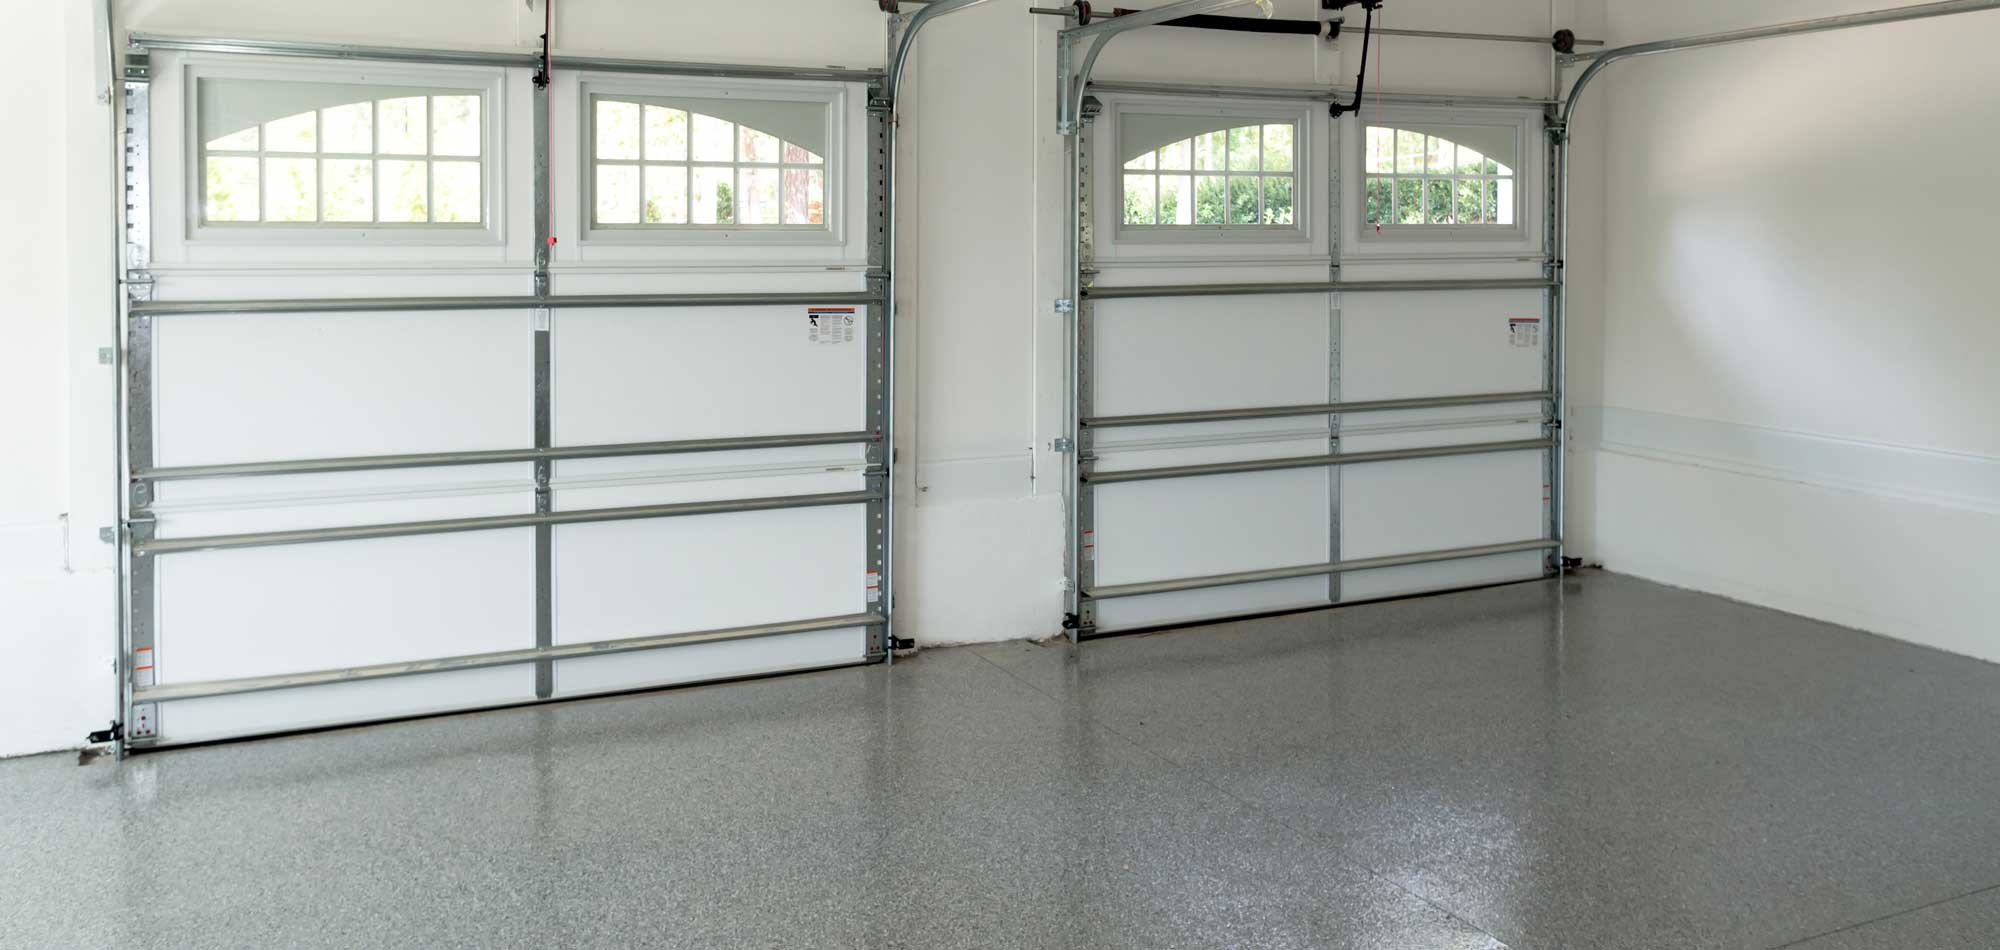 Garage Floor Epoxy Installation Cost In 2019 Inch Calculator